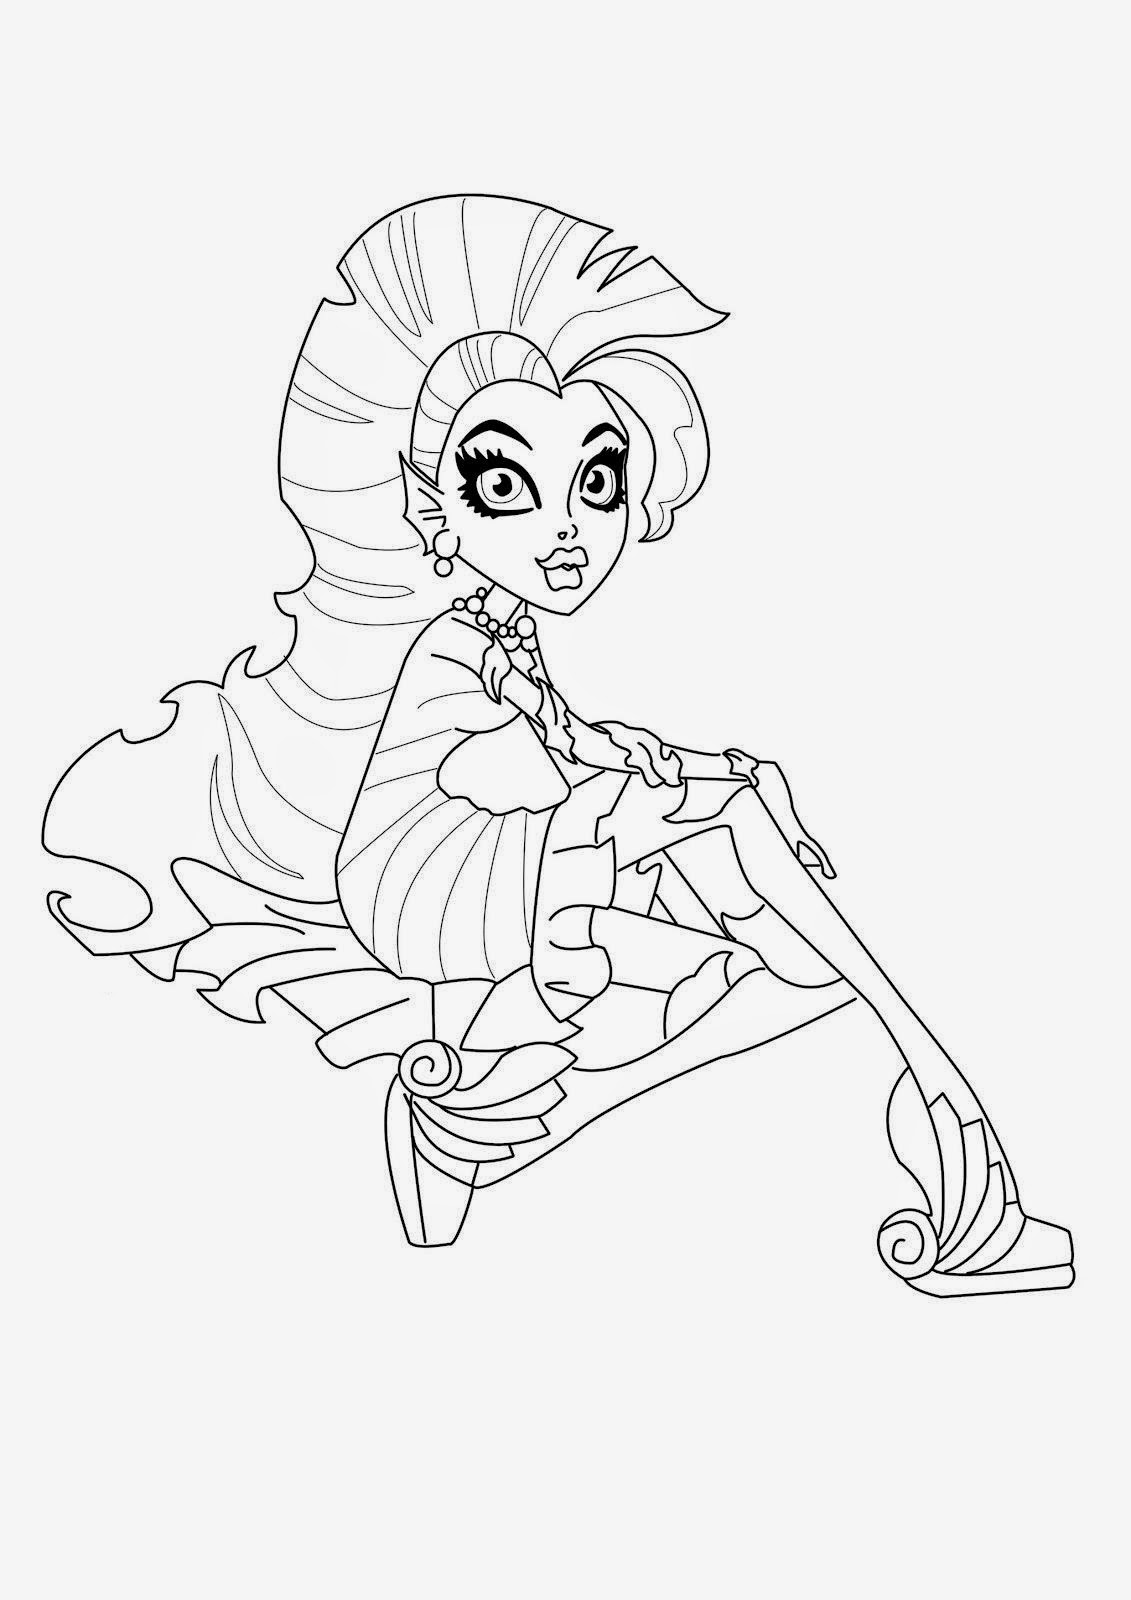 monster high free printable coloring pages monster high free printable coloring pages high printable coloring monster free pages